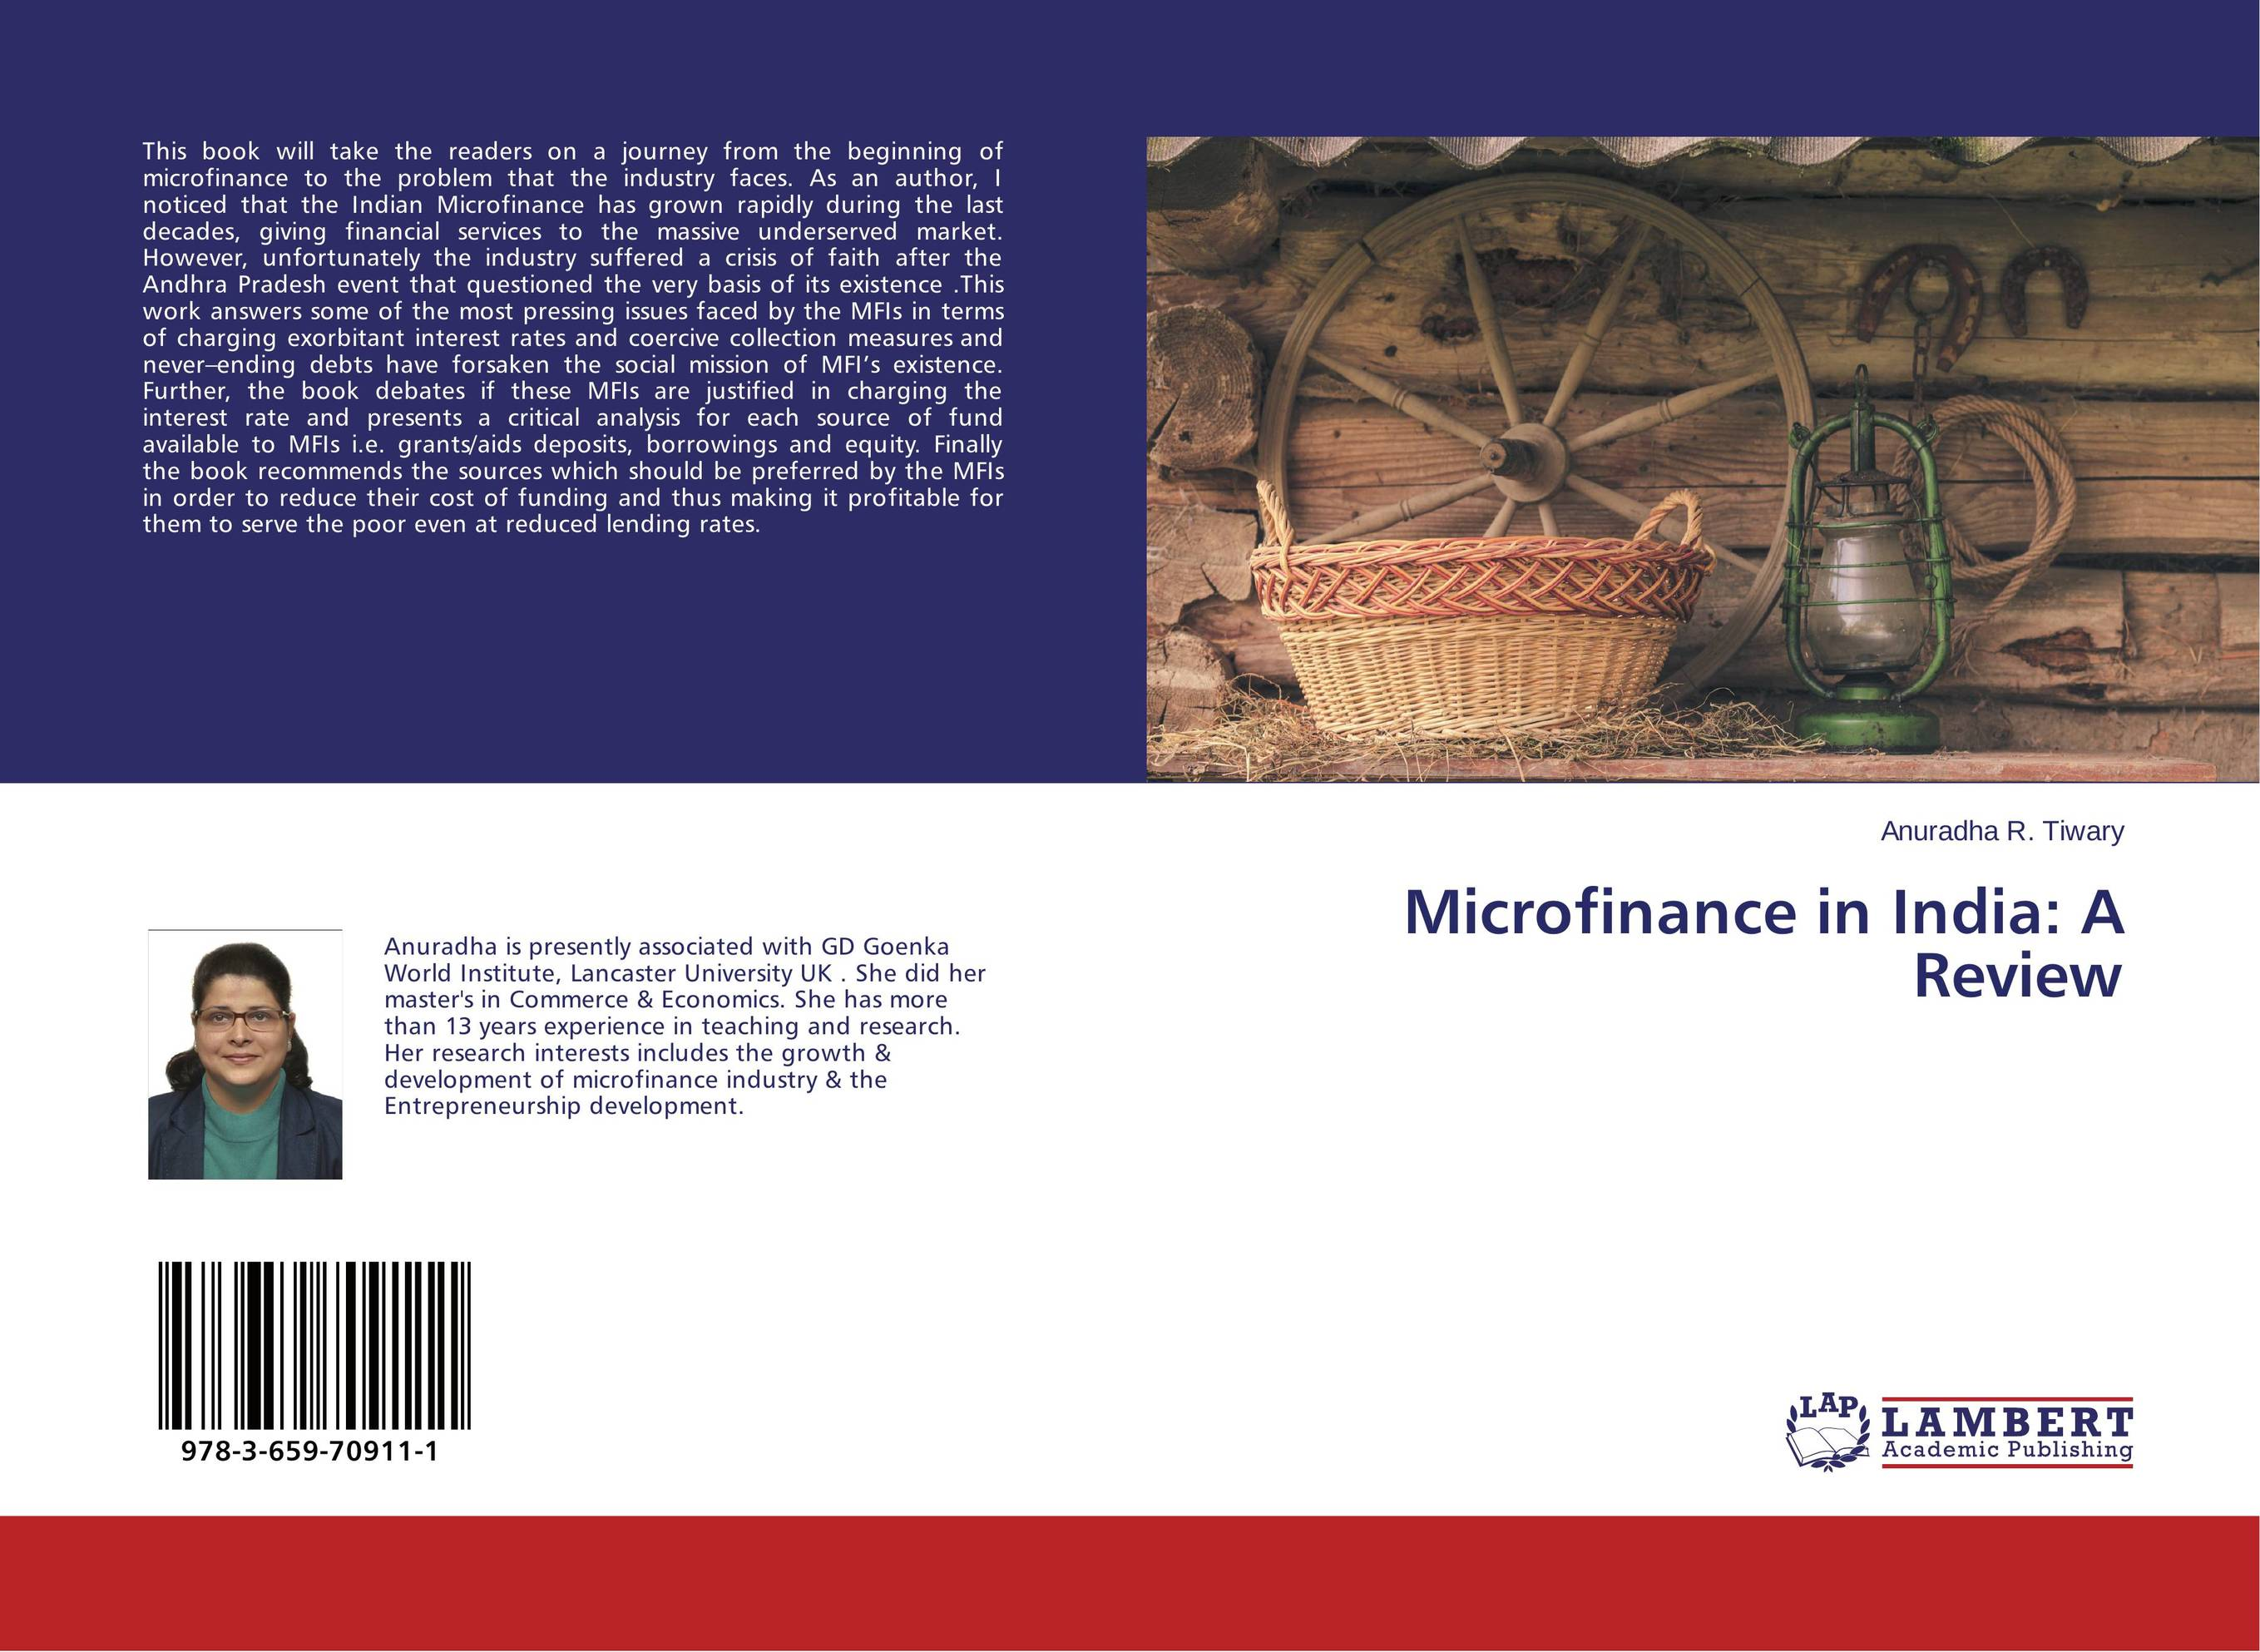 Microfinance in India: A Review geochemistry of groundwater in a river basin of andhra pradesh india